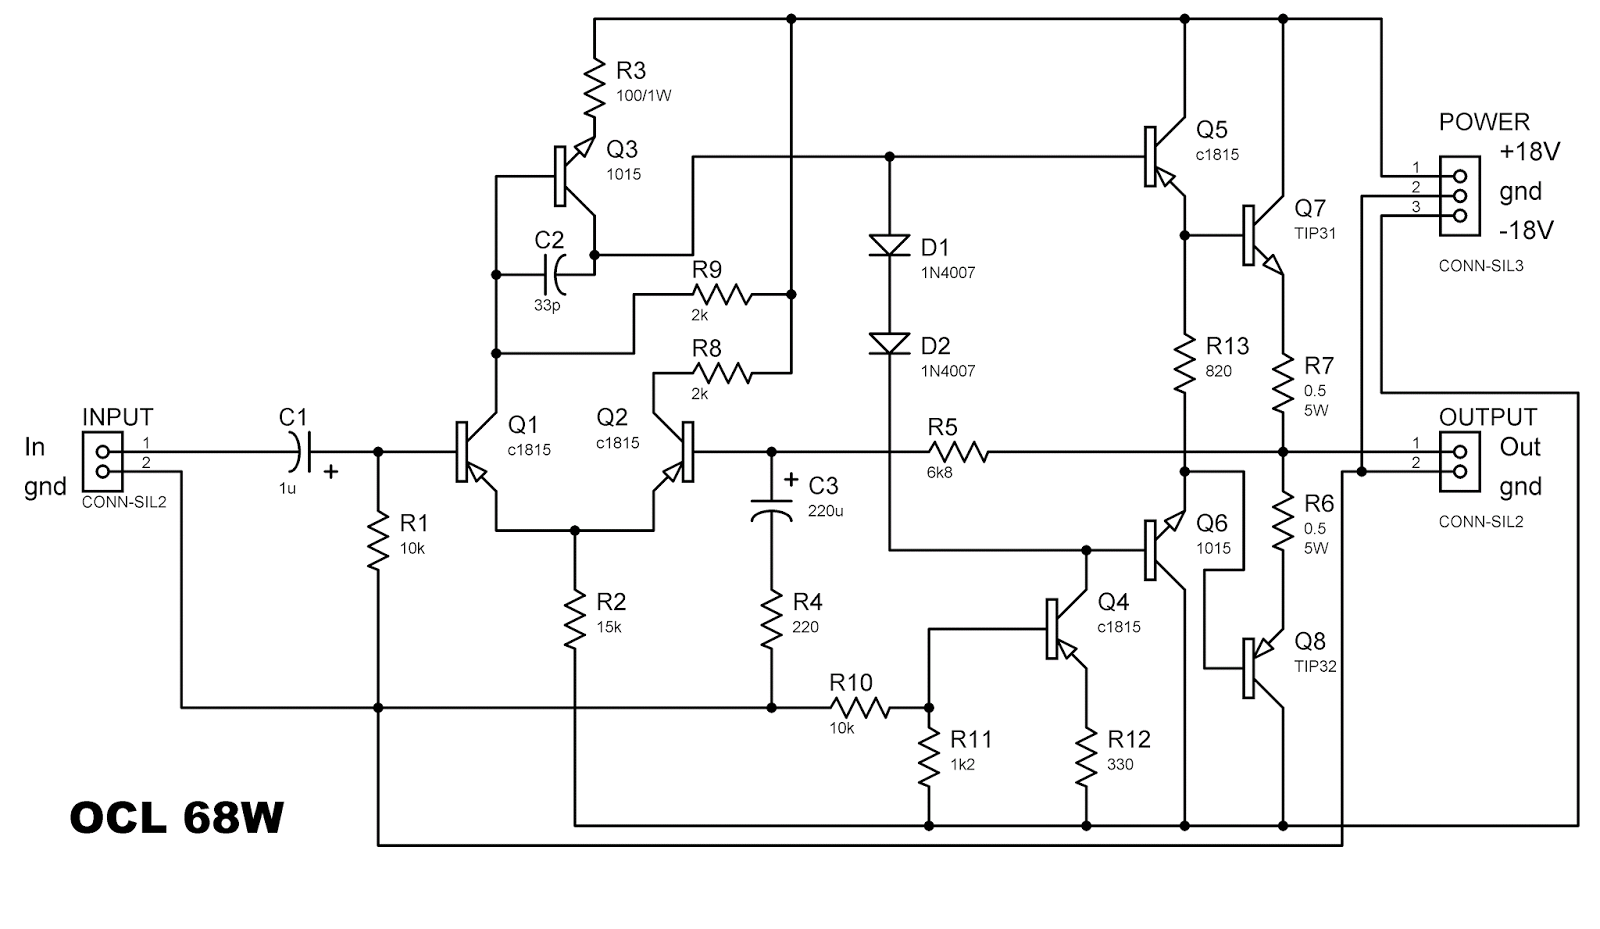 ocl 68 watt power amplifier audio amplifier circuit